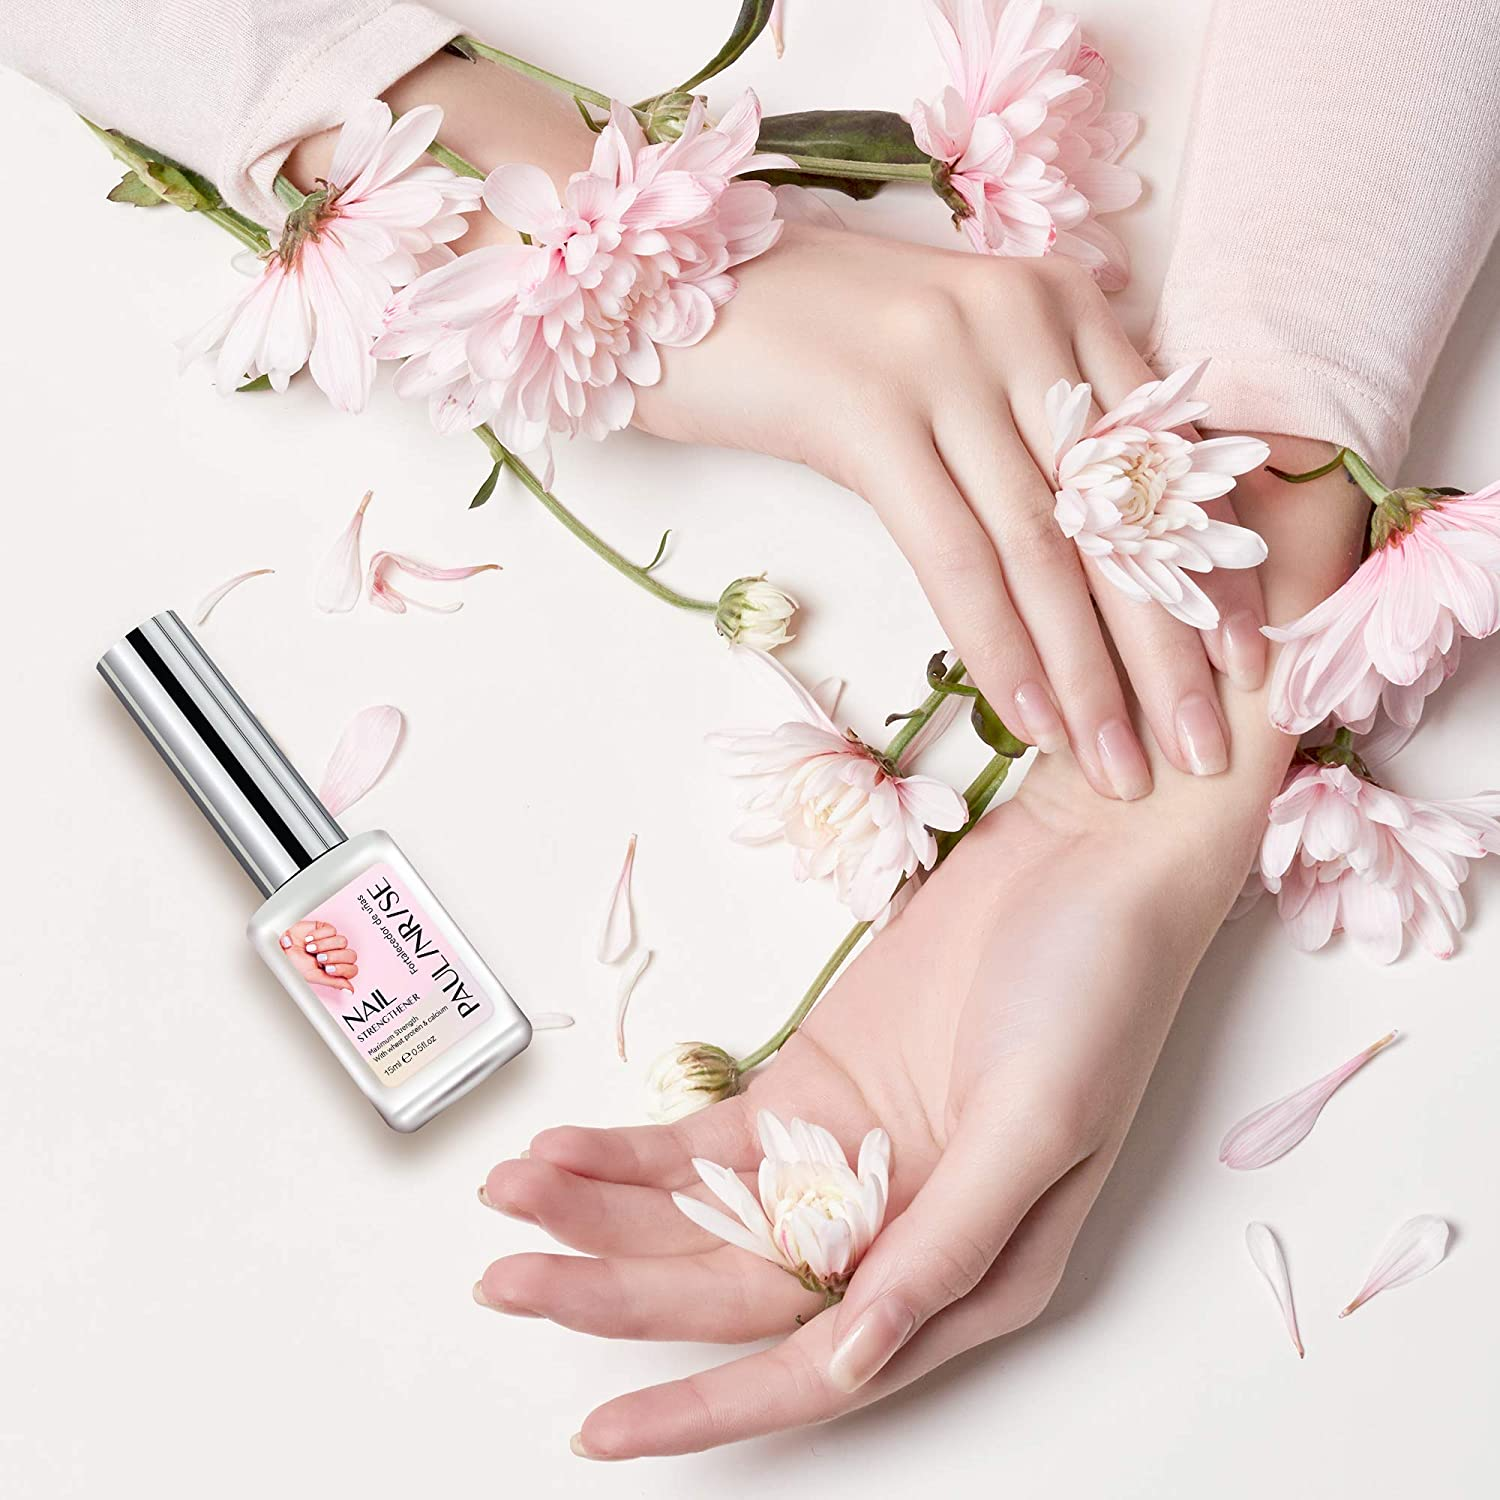 Paulinrise Nail Strengthener for Treating Weak, Damaged Nails, Promotes Growth, Use as a Top Coat or Base Coat : Beauty